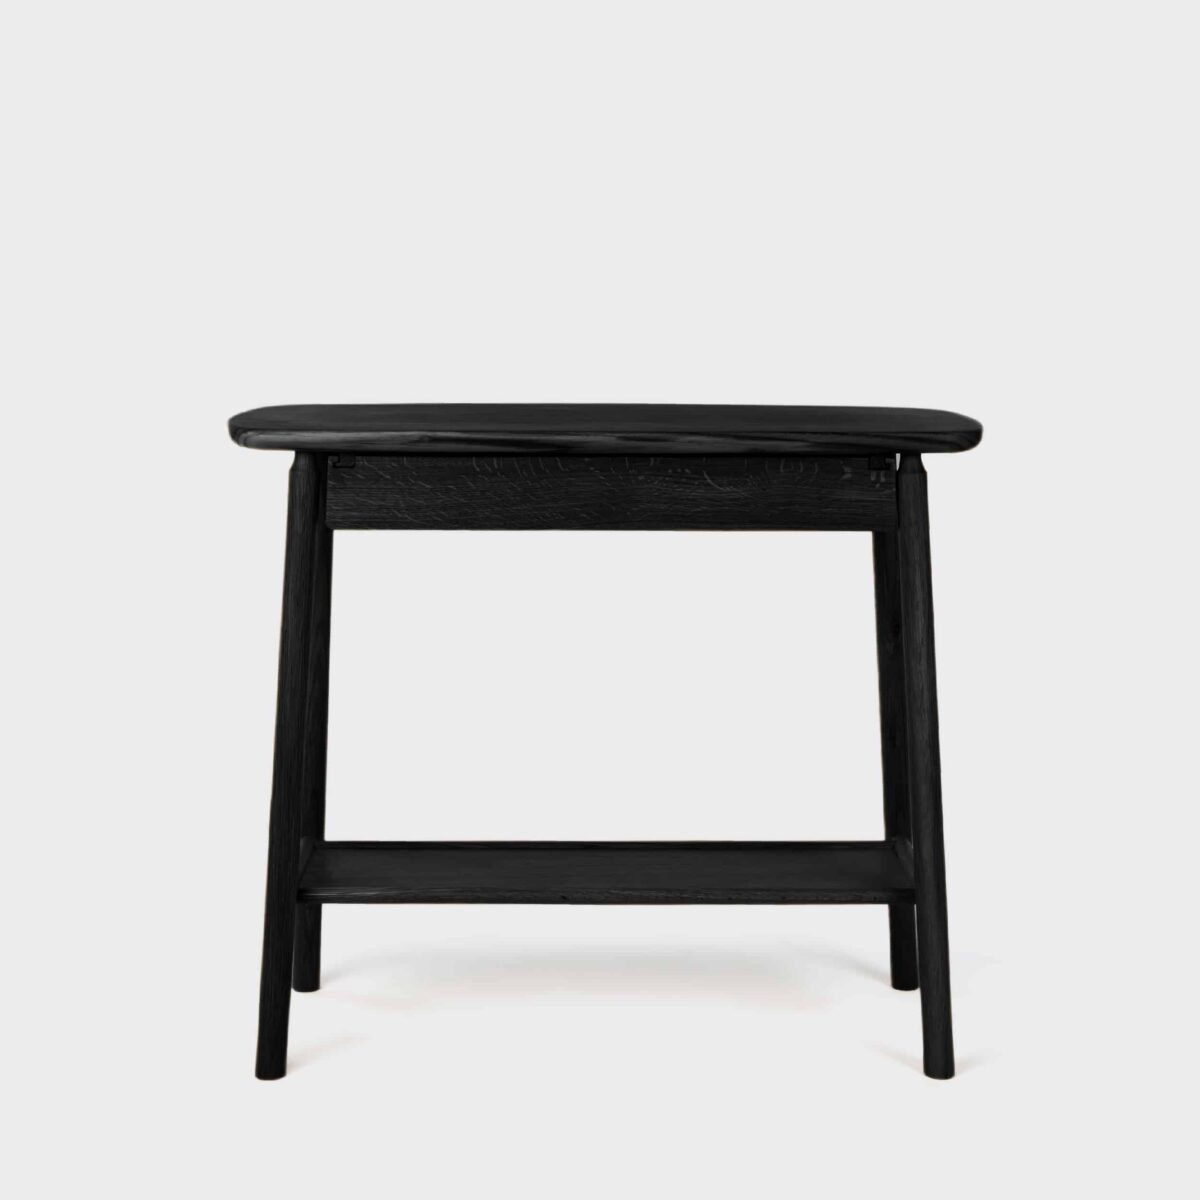 Hardy_Console_Drawer_Black_001